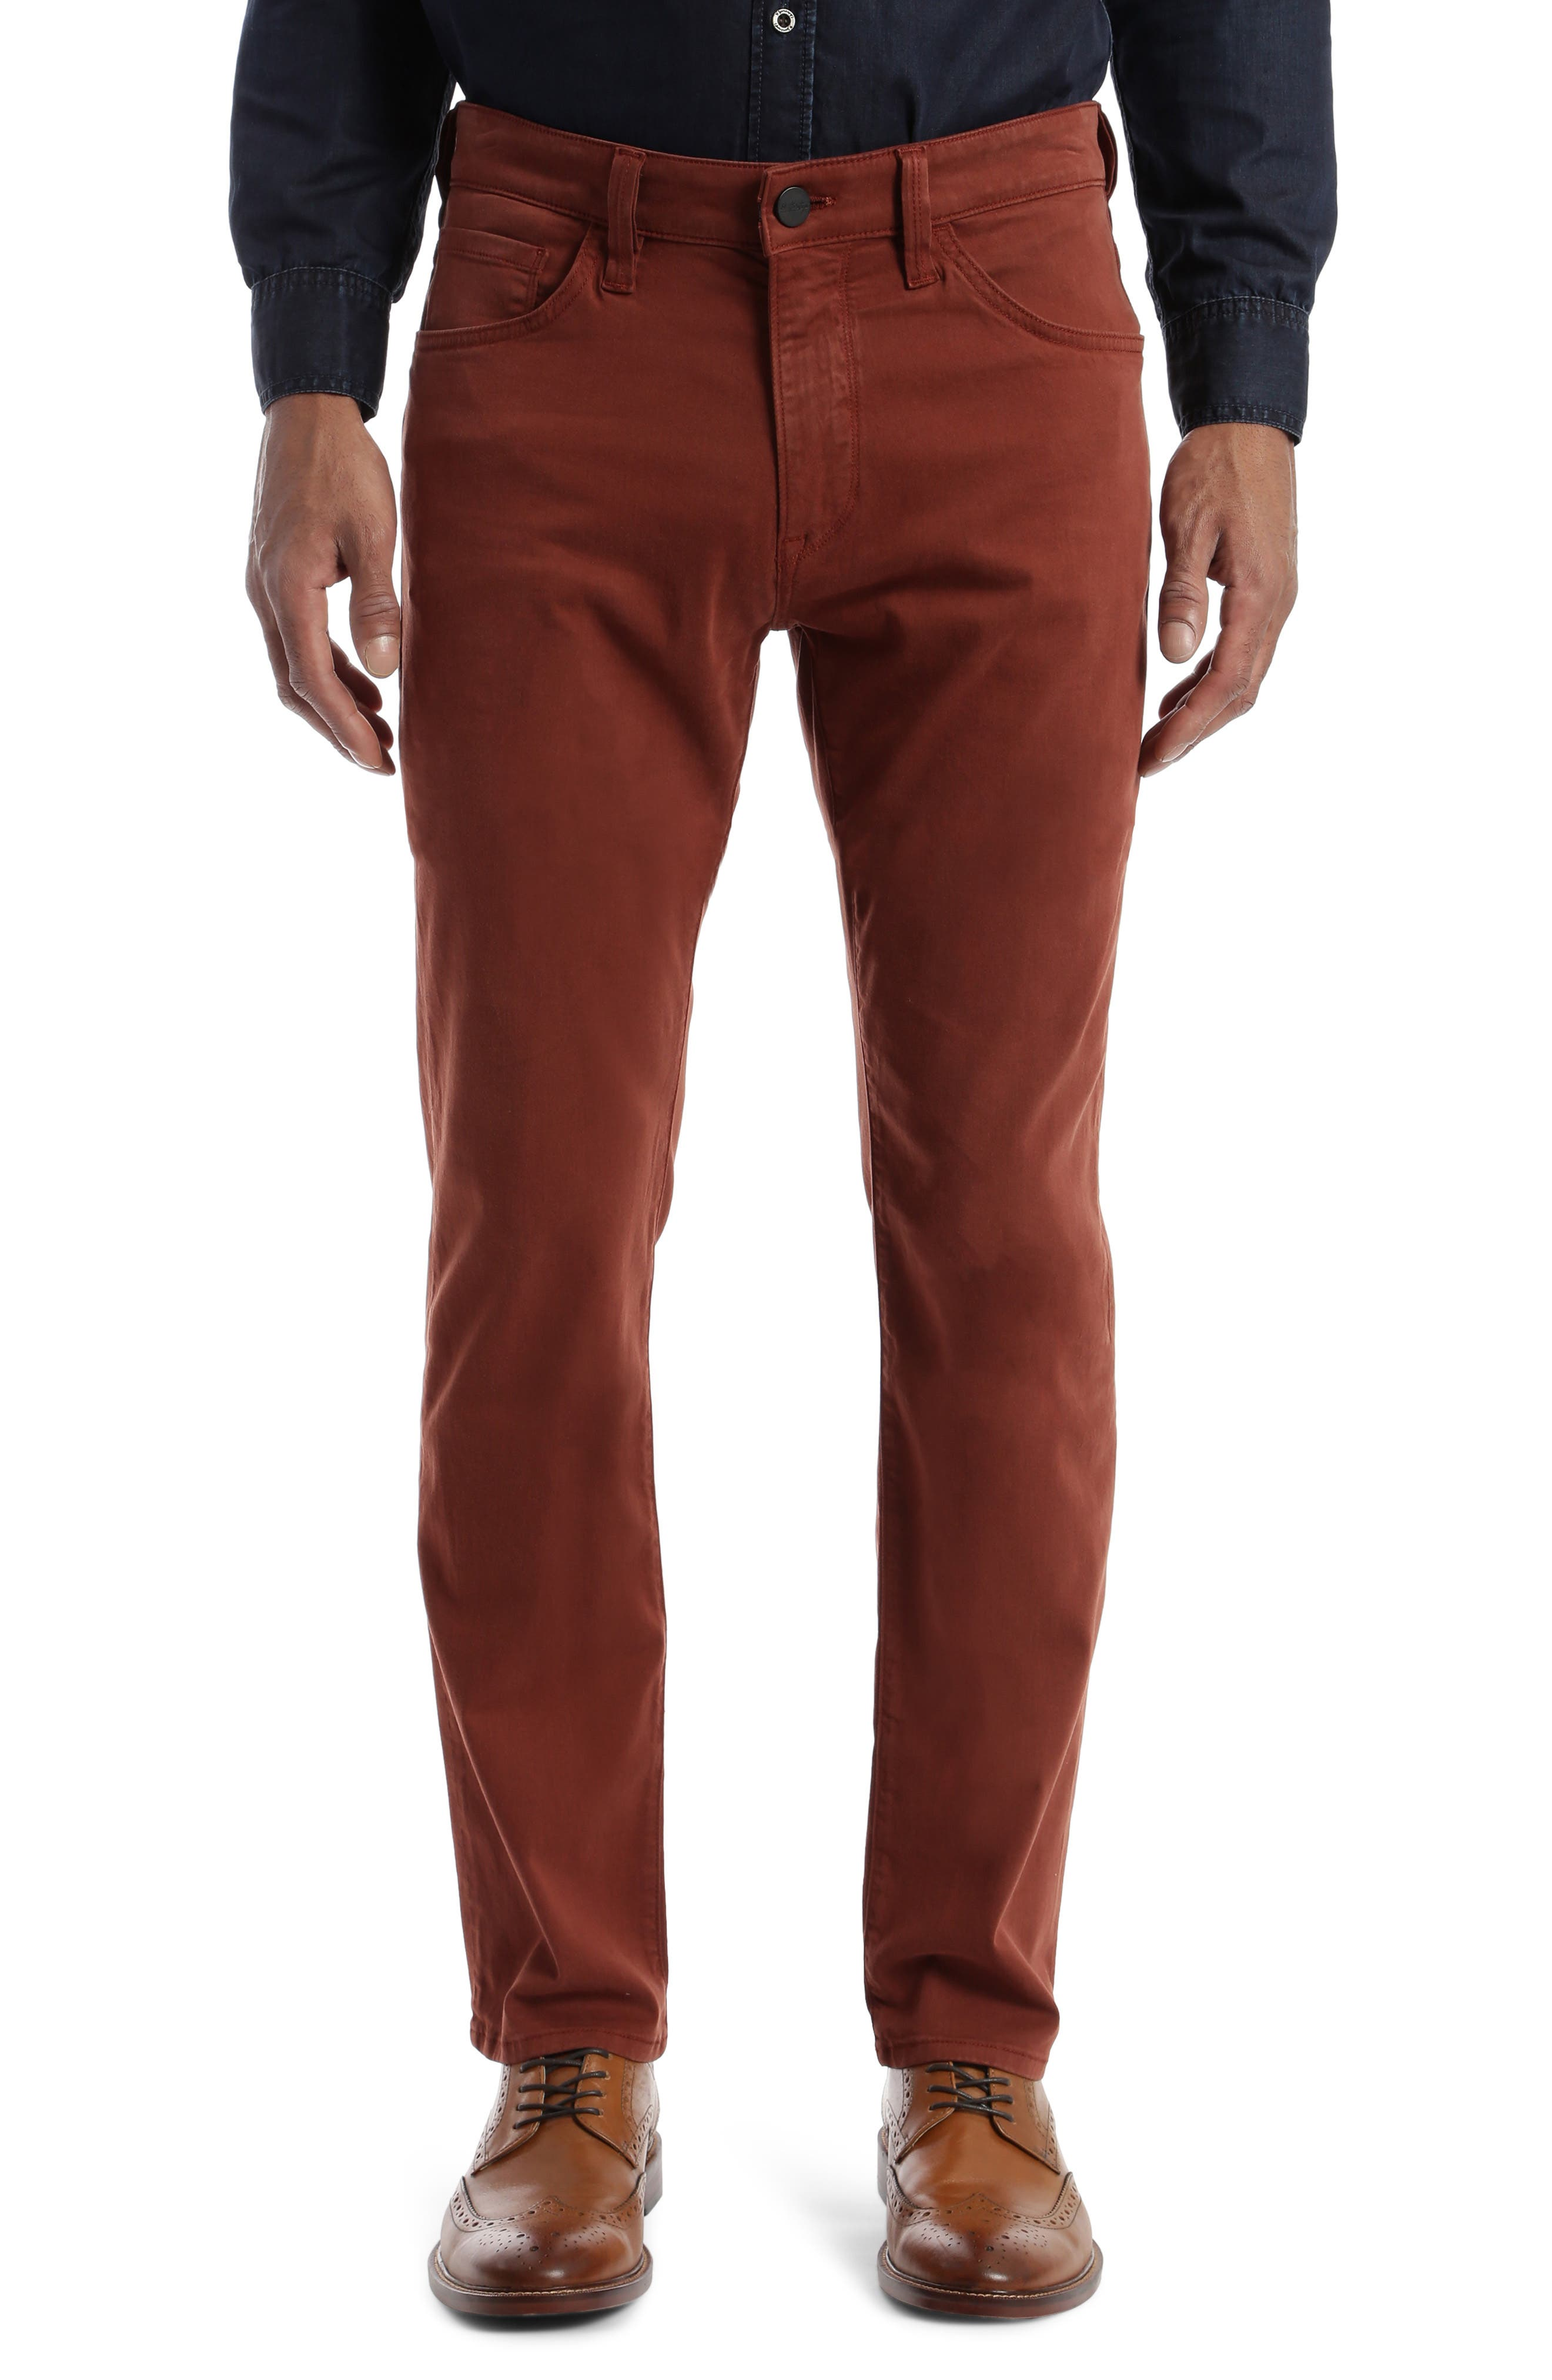 """Image of 34 Heritage Courage Straight Pants - 30-34"""" Inseam"""